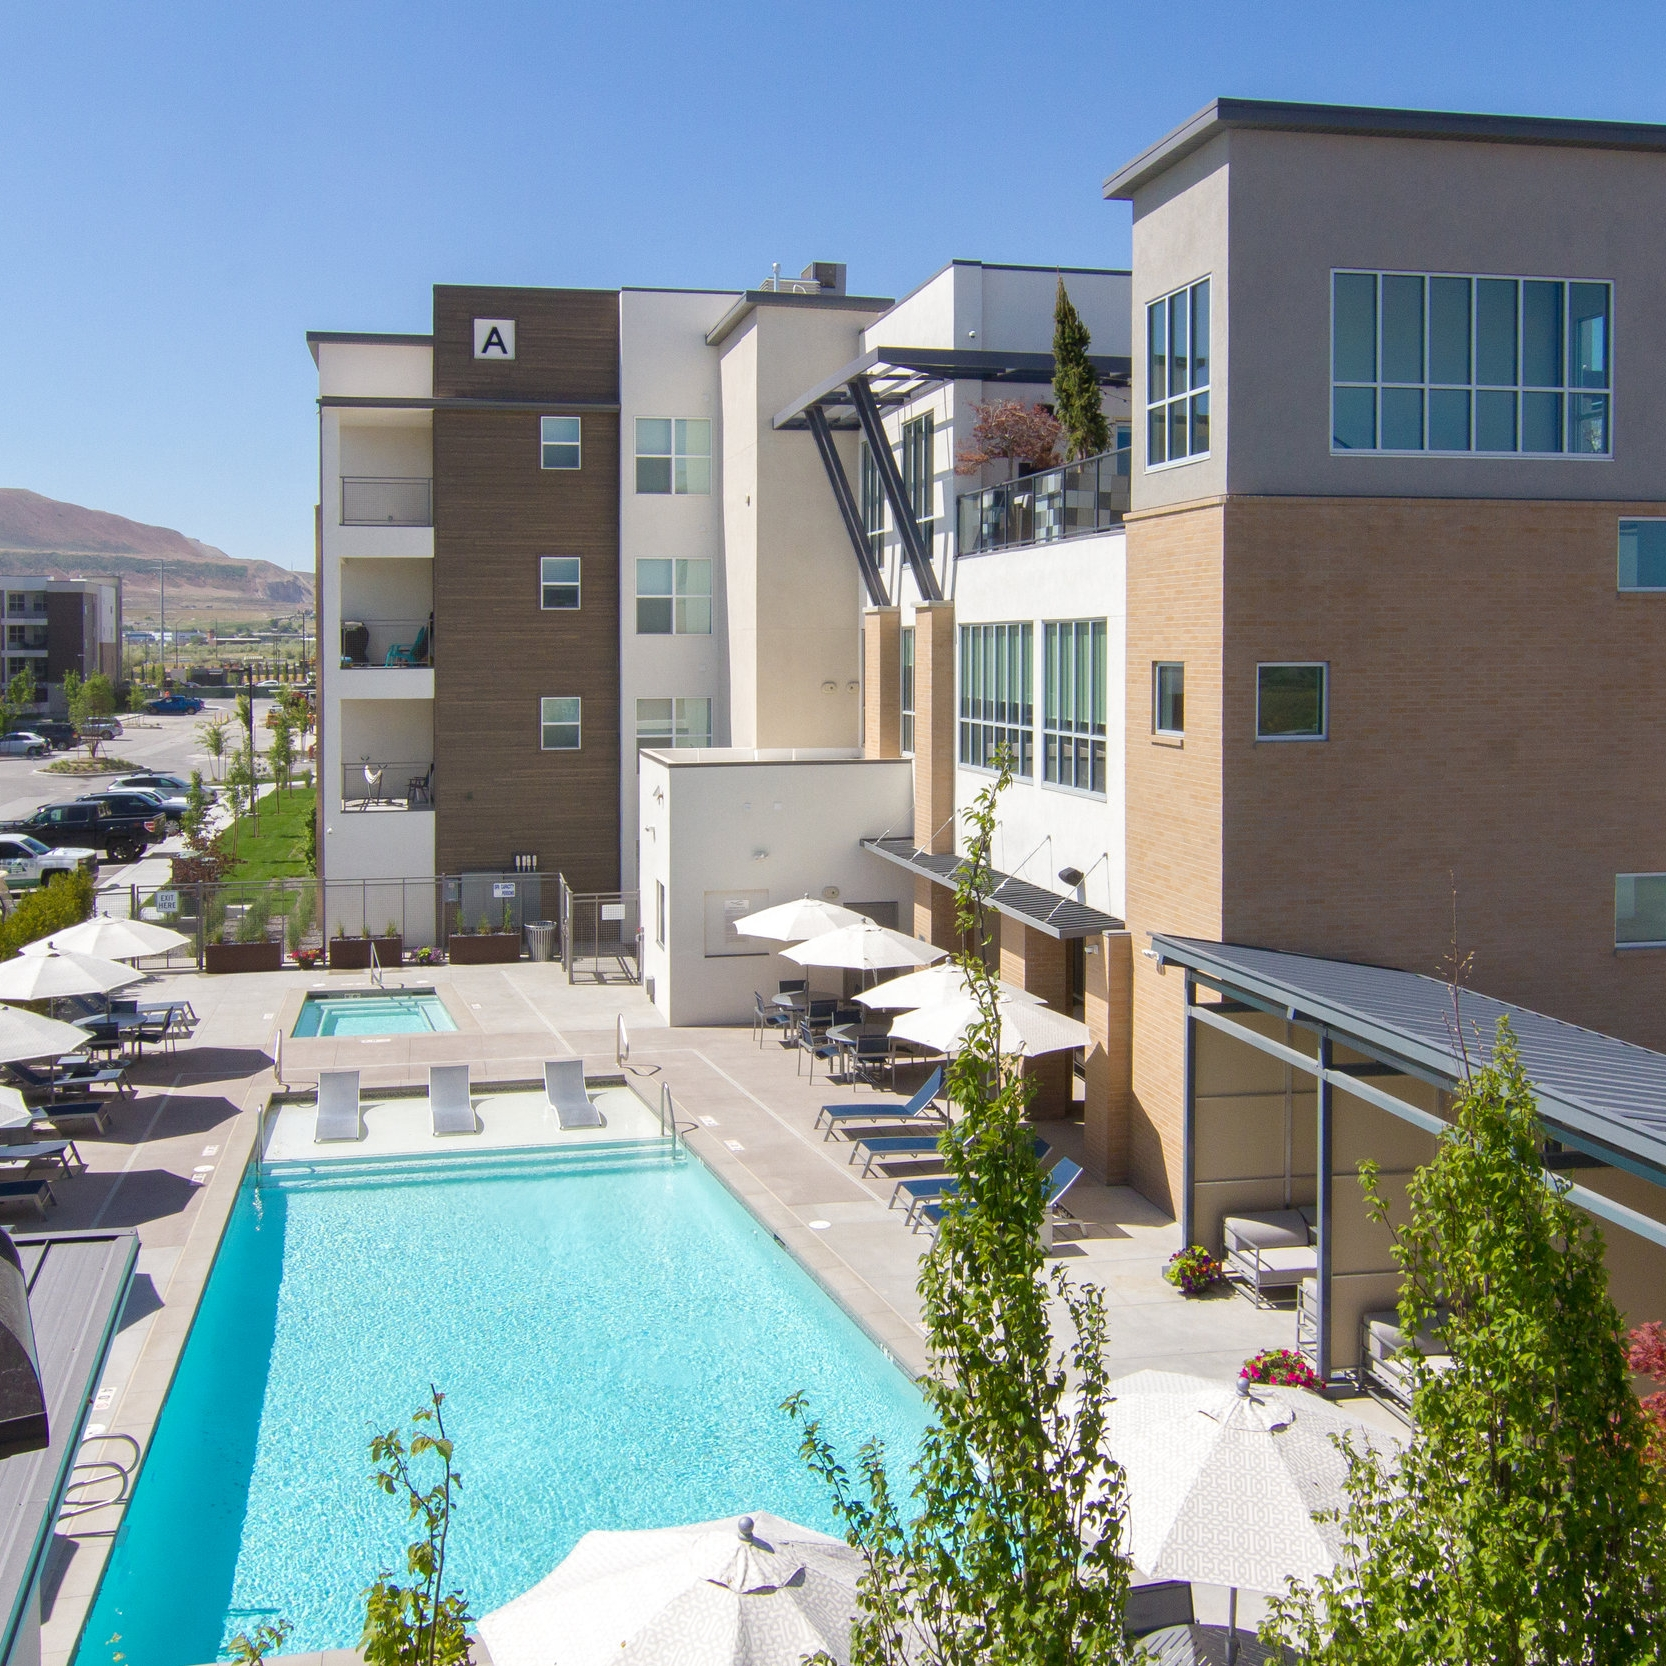 Dwelo multifamily customer, The Wasatch Group